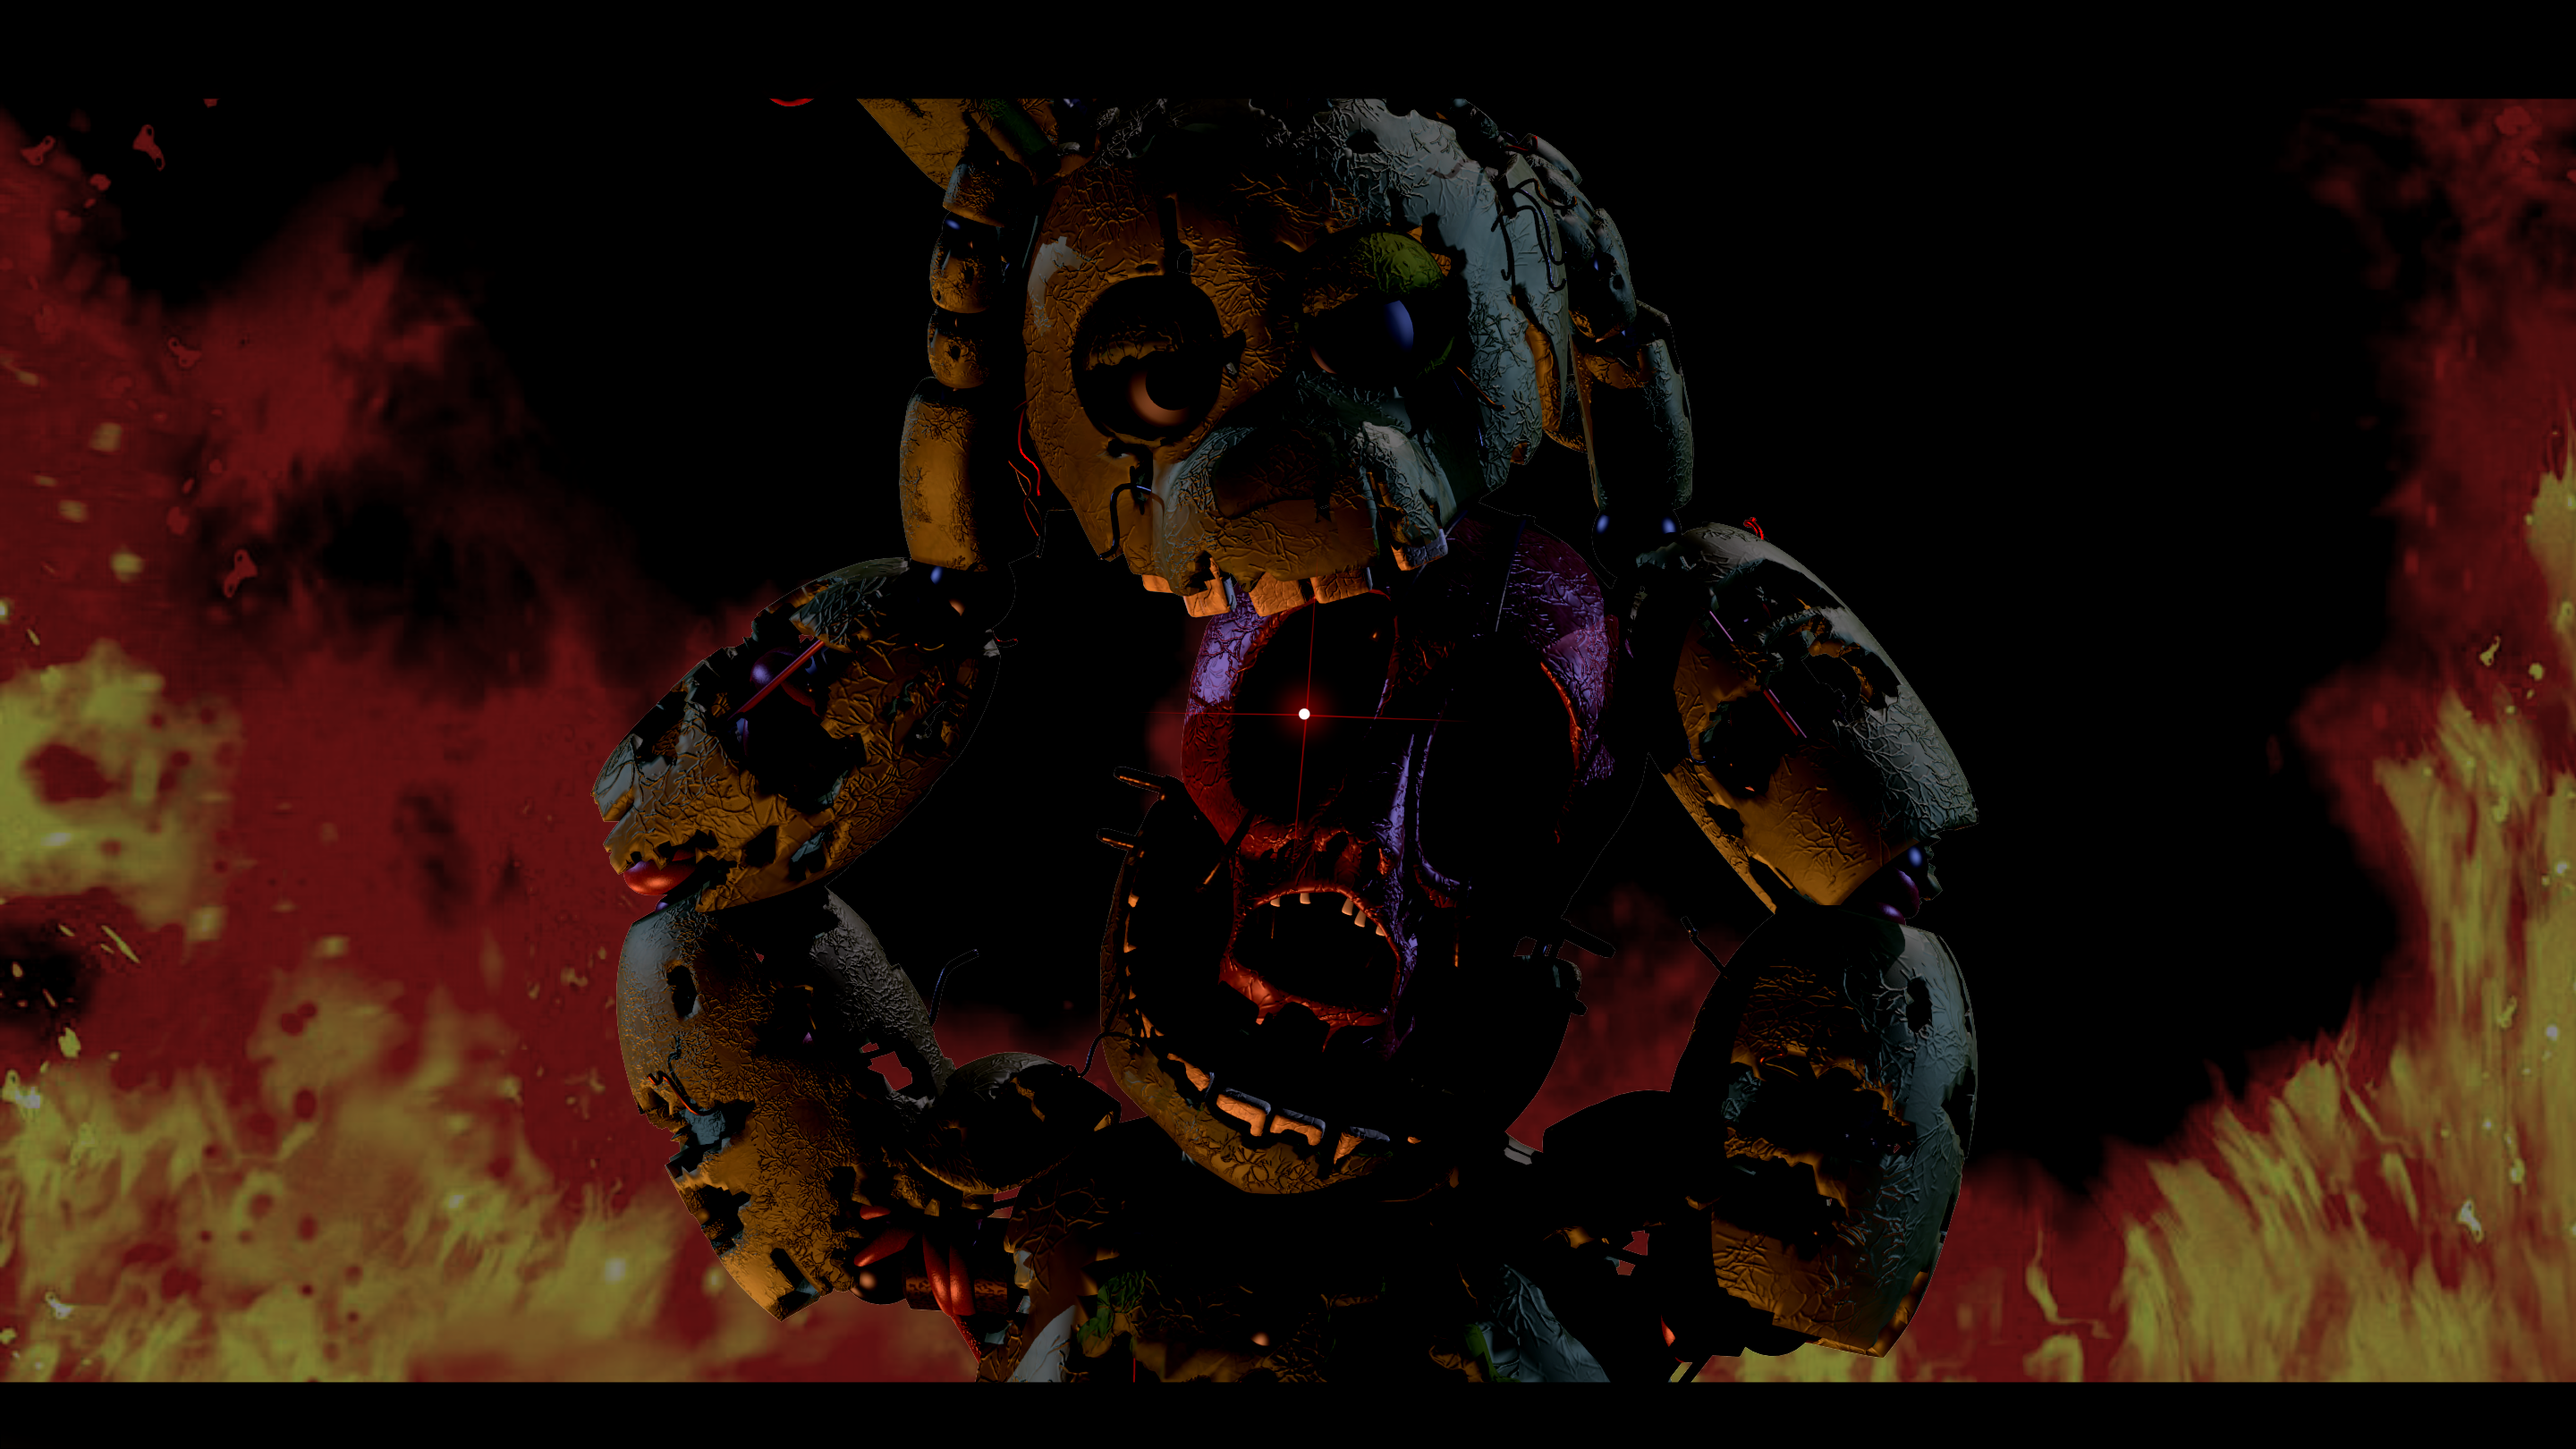 Five Nights at Freddy's 3 HD Wallpapers, Pictures, Images